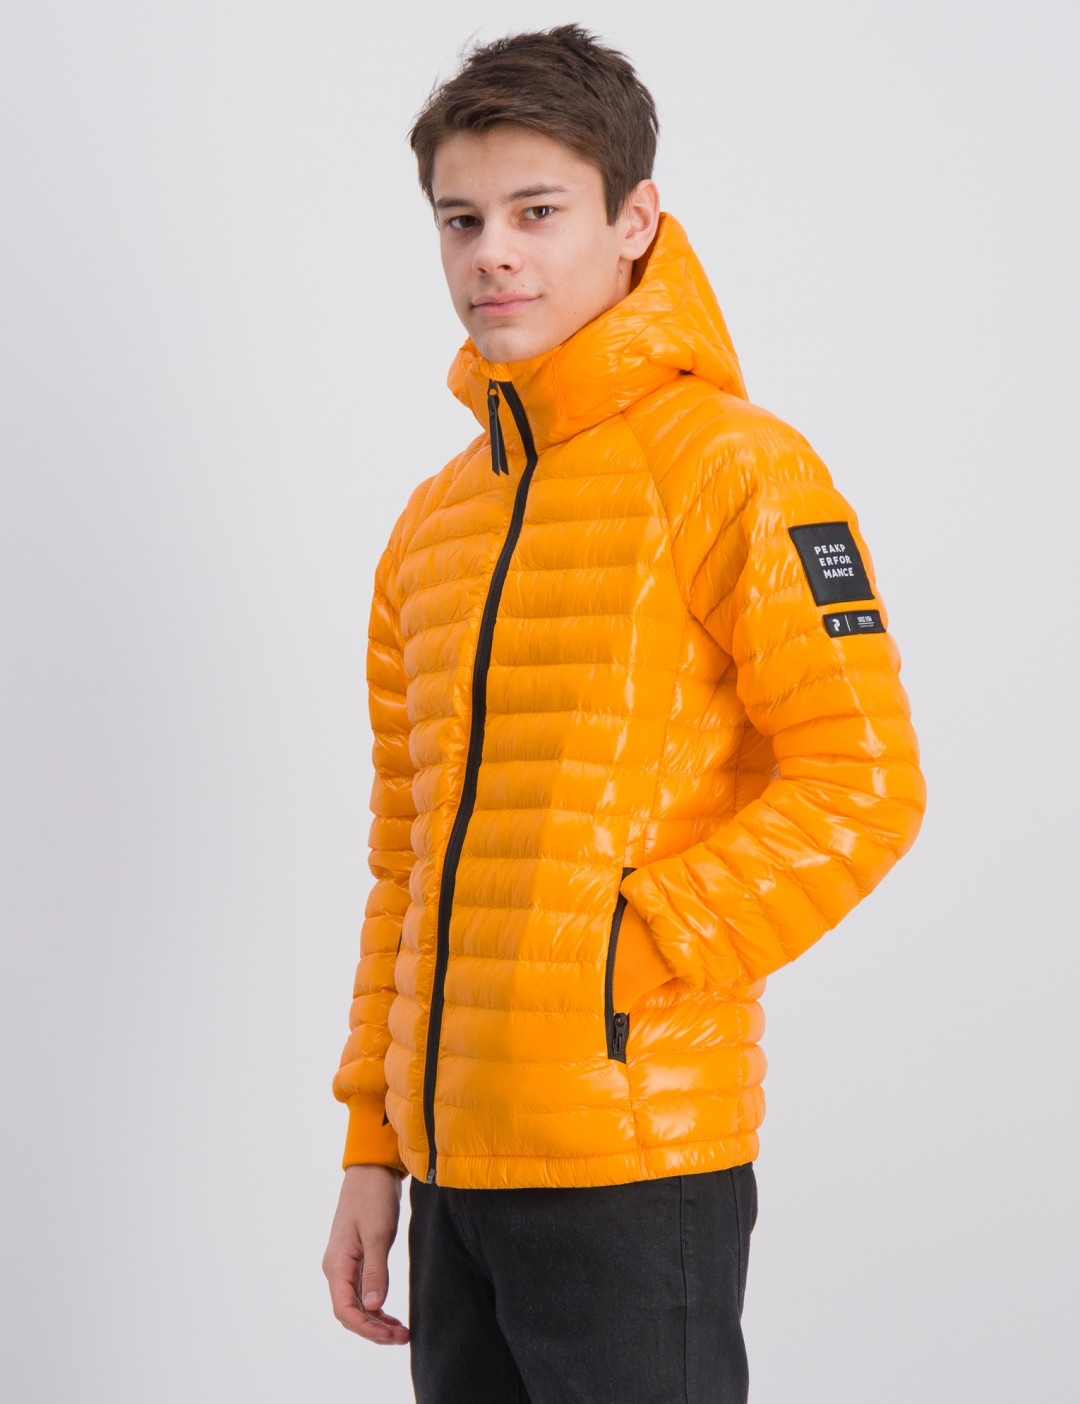 Om Jr Tomicl J Orange från Peak Performance | KidsBrandStore